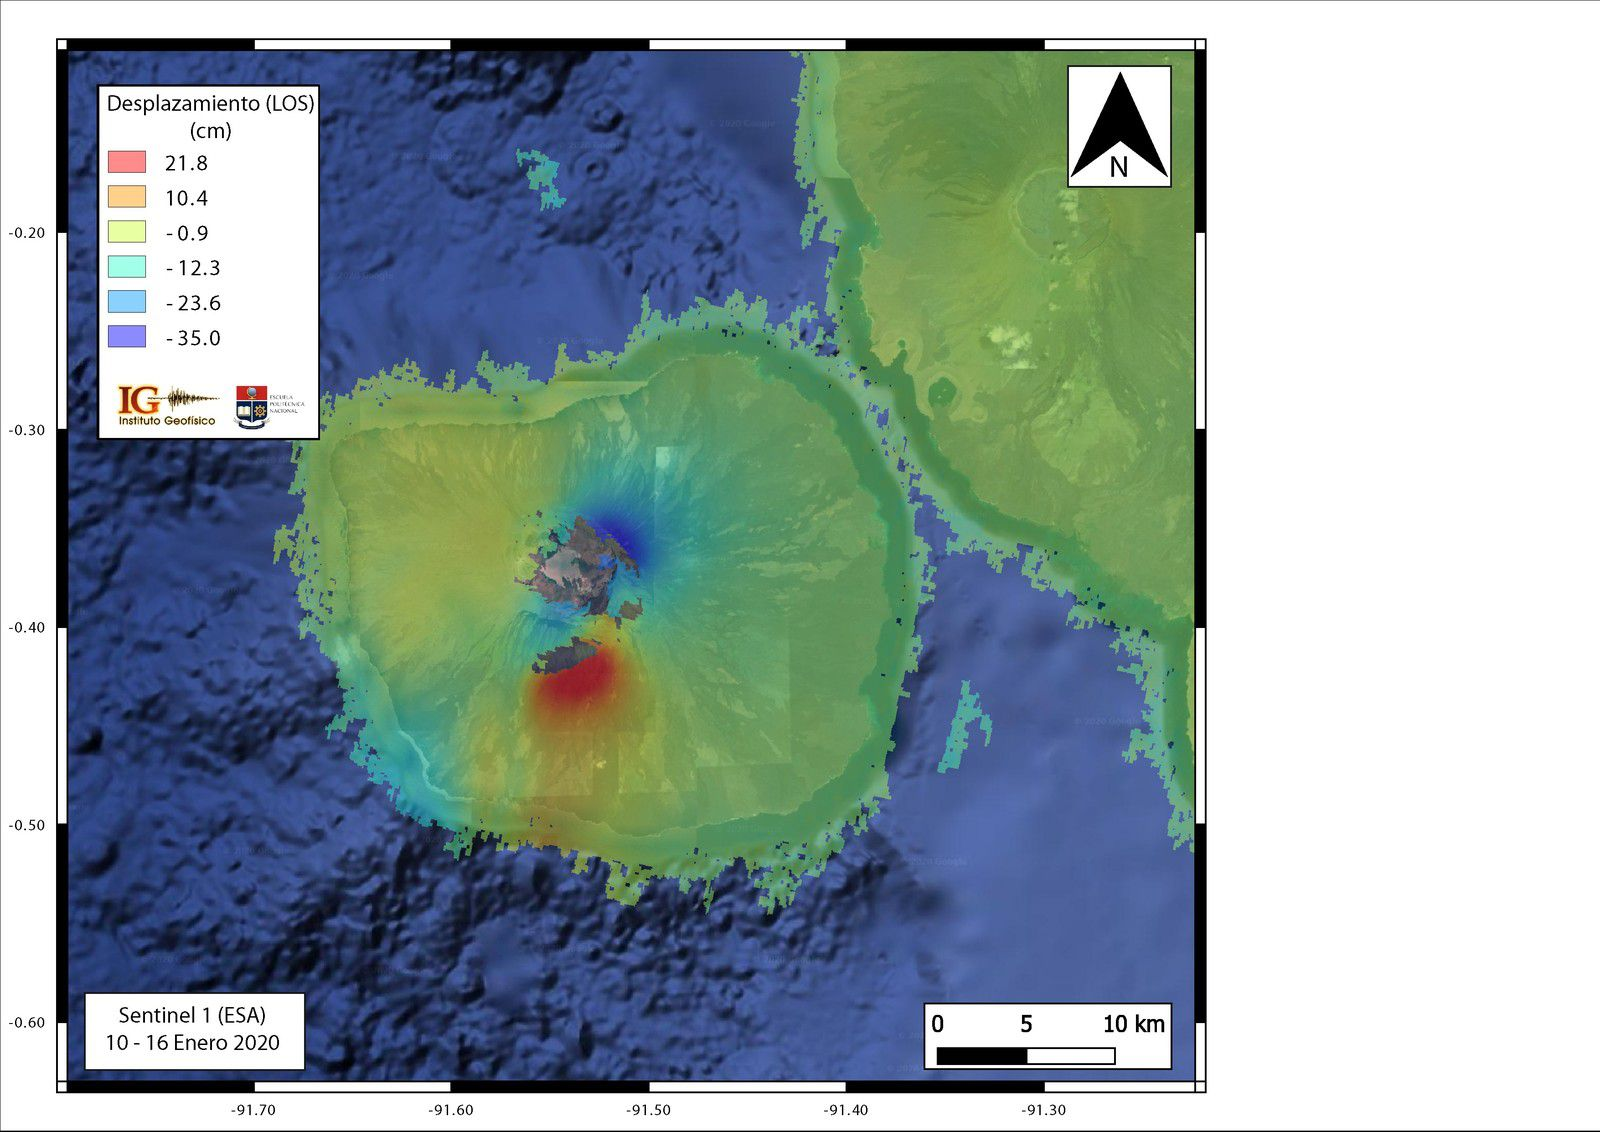 Ground displacement map in the line of sight (LOS) in the Fernandina Island region between January 10 and 16, 2020, showing the deformation that caused the January 12, 2020 eruption. (Treaty with ISCE, P. Espín).